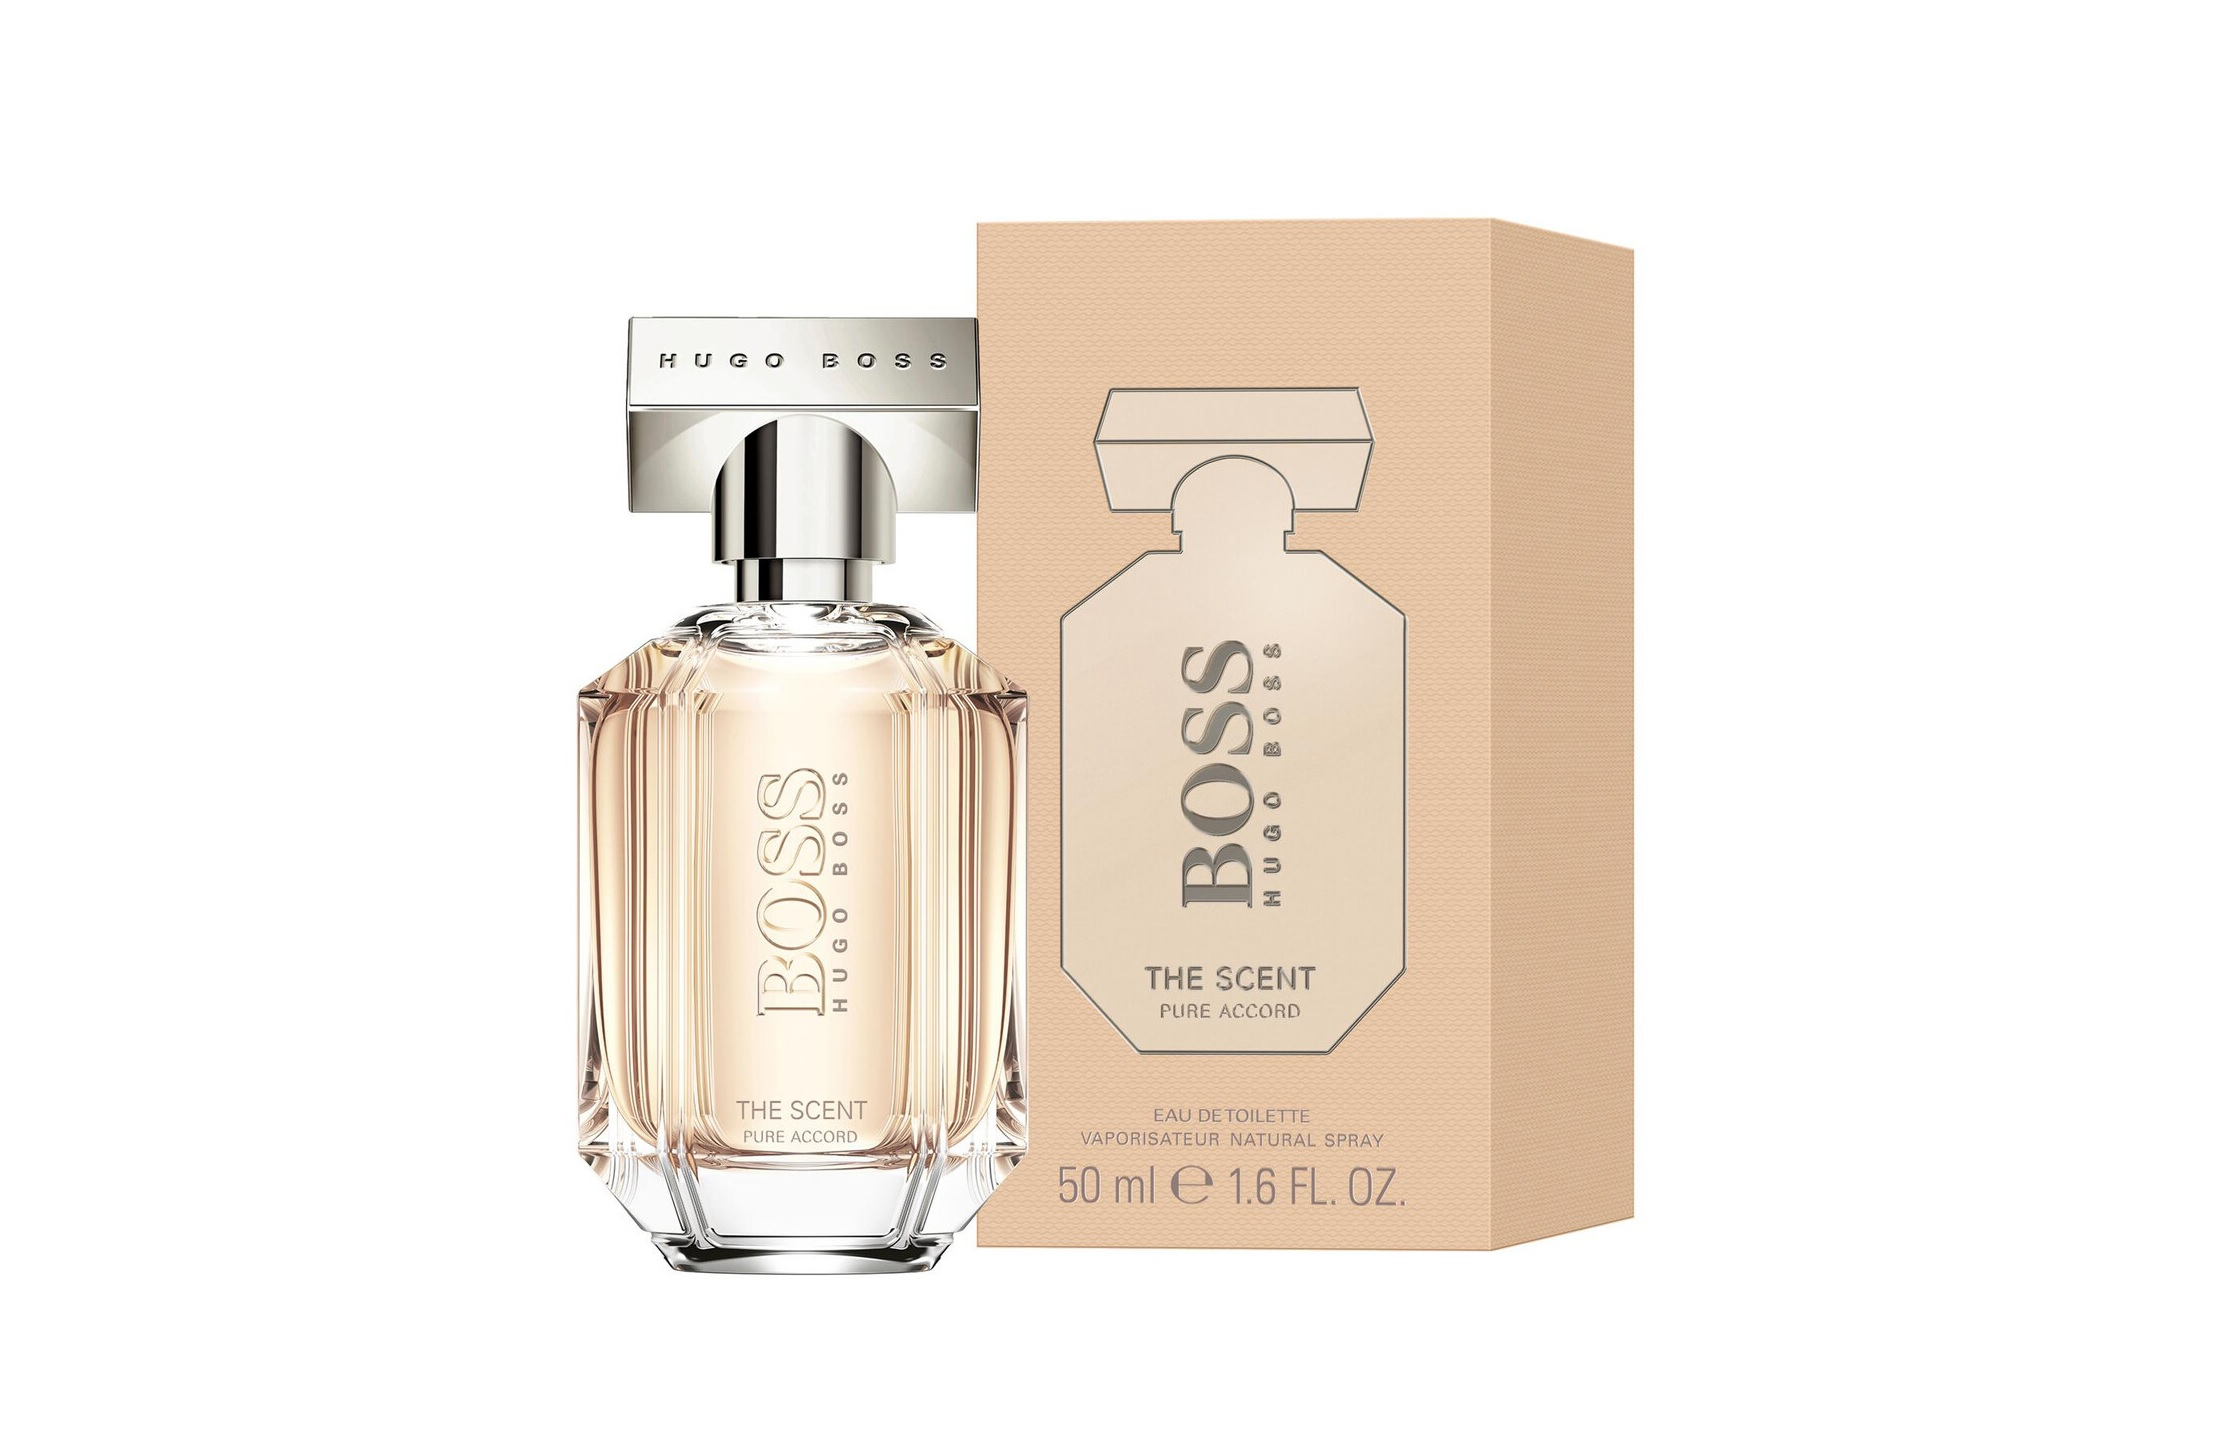 Hugo Boss The Scent Pure Accord for Her